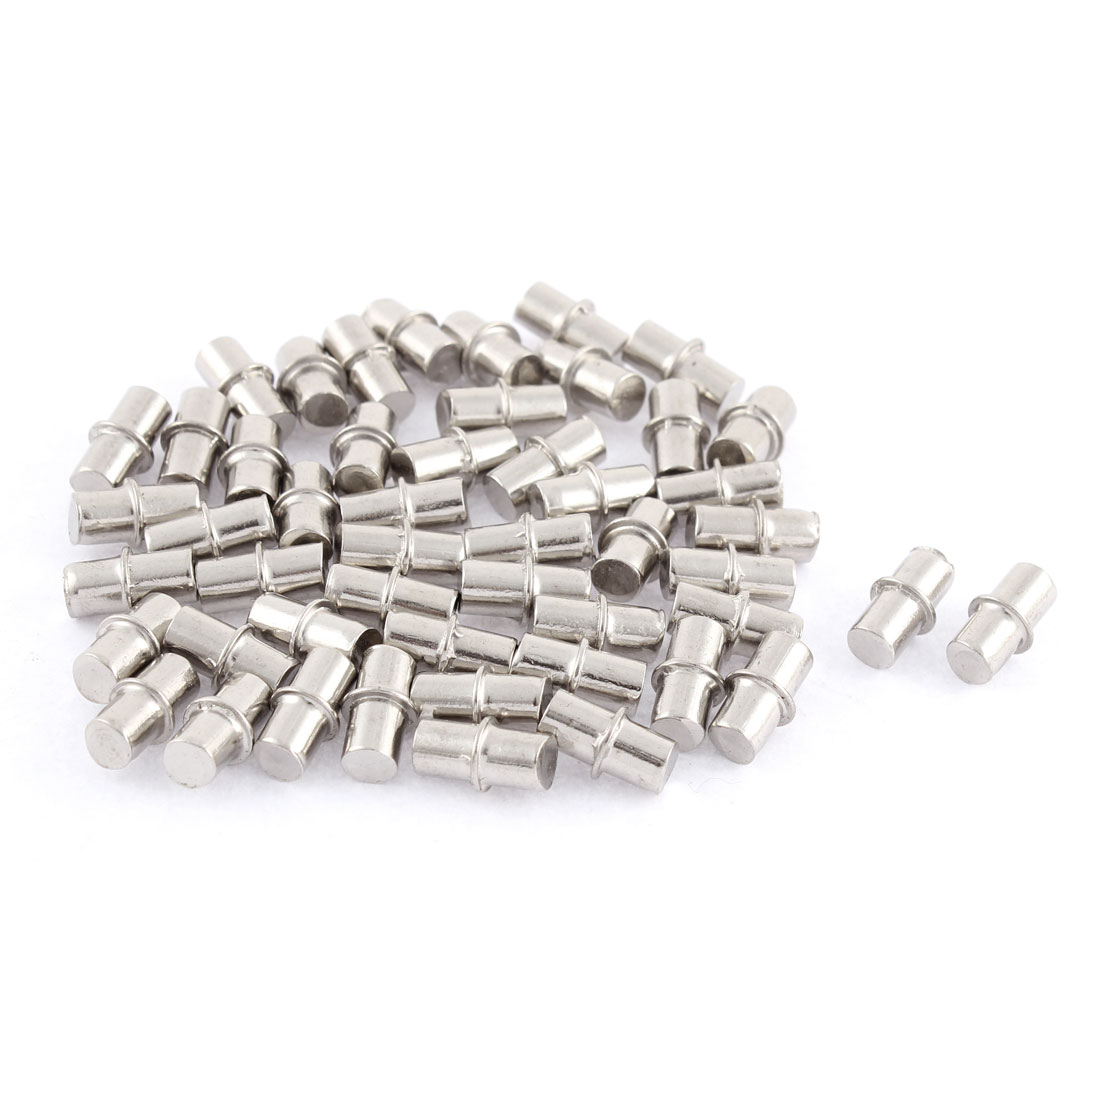 6mm x 14mm Furniture Cupboard Hardware Metal Shelf Support Pins 50 Pcs